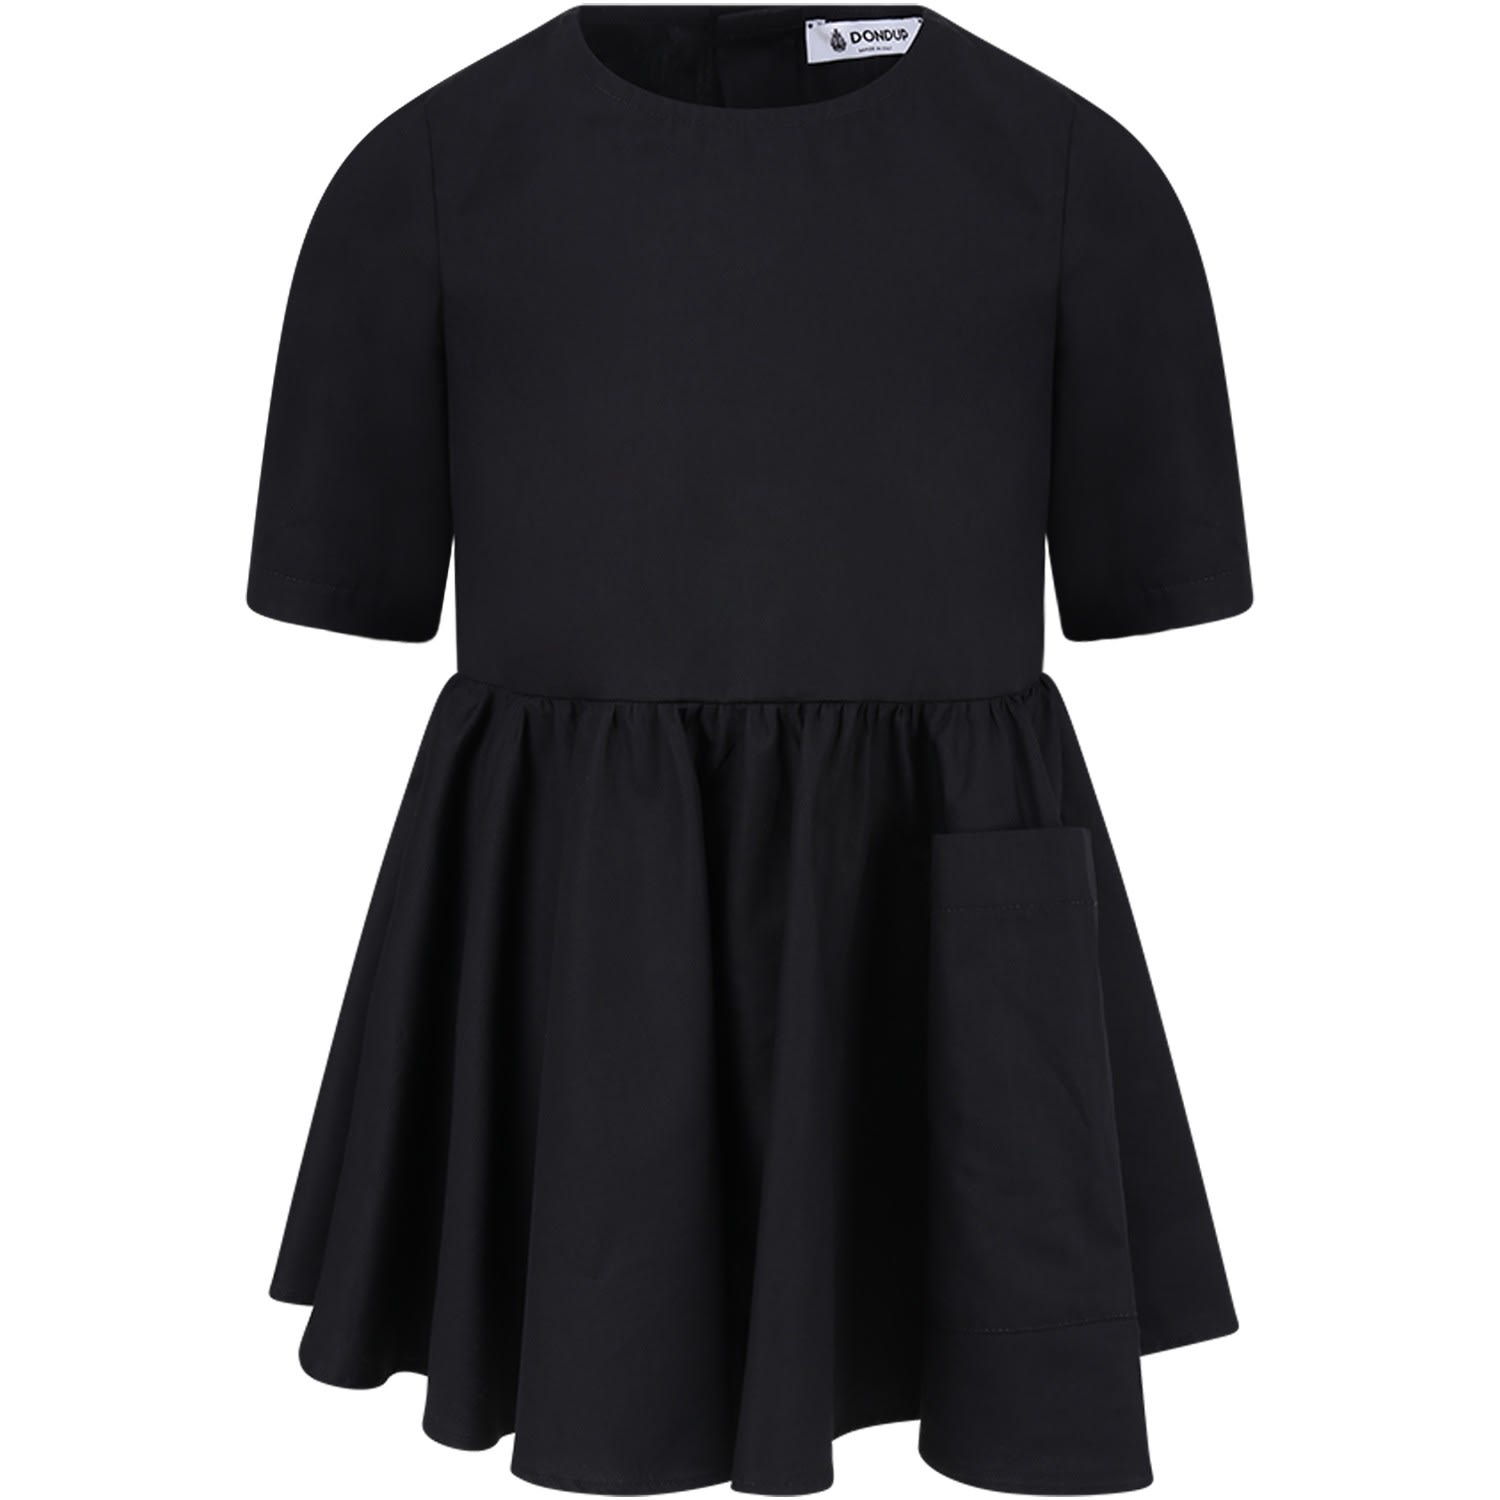 Dondup Black Girl Dress With Iconic D